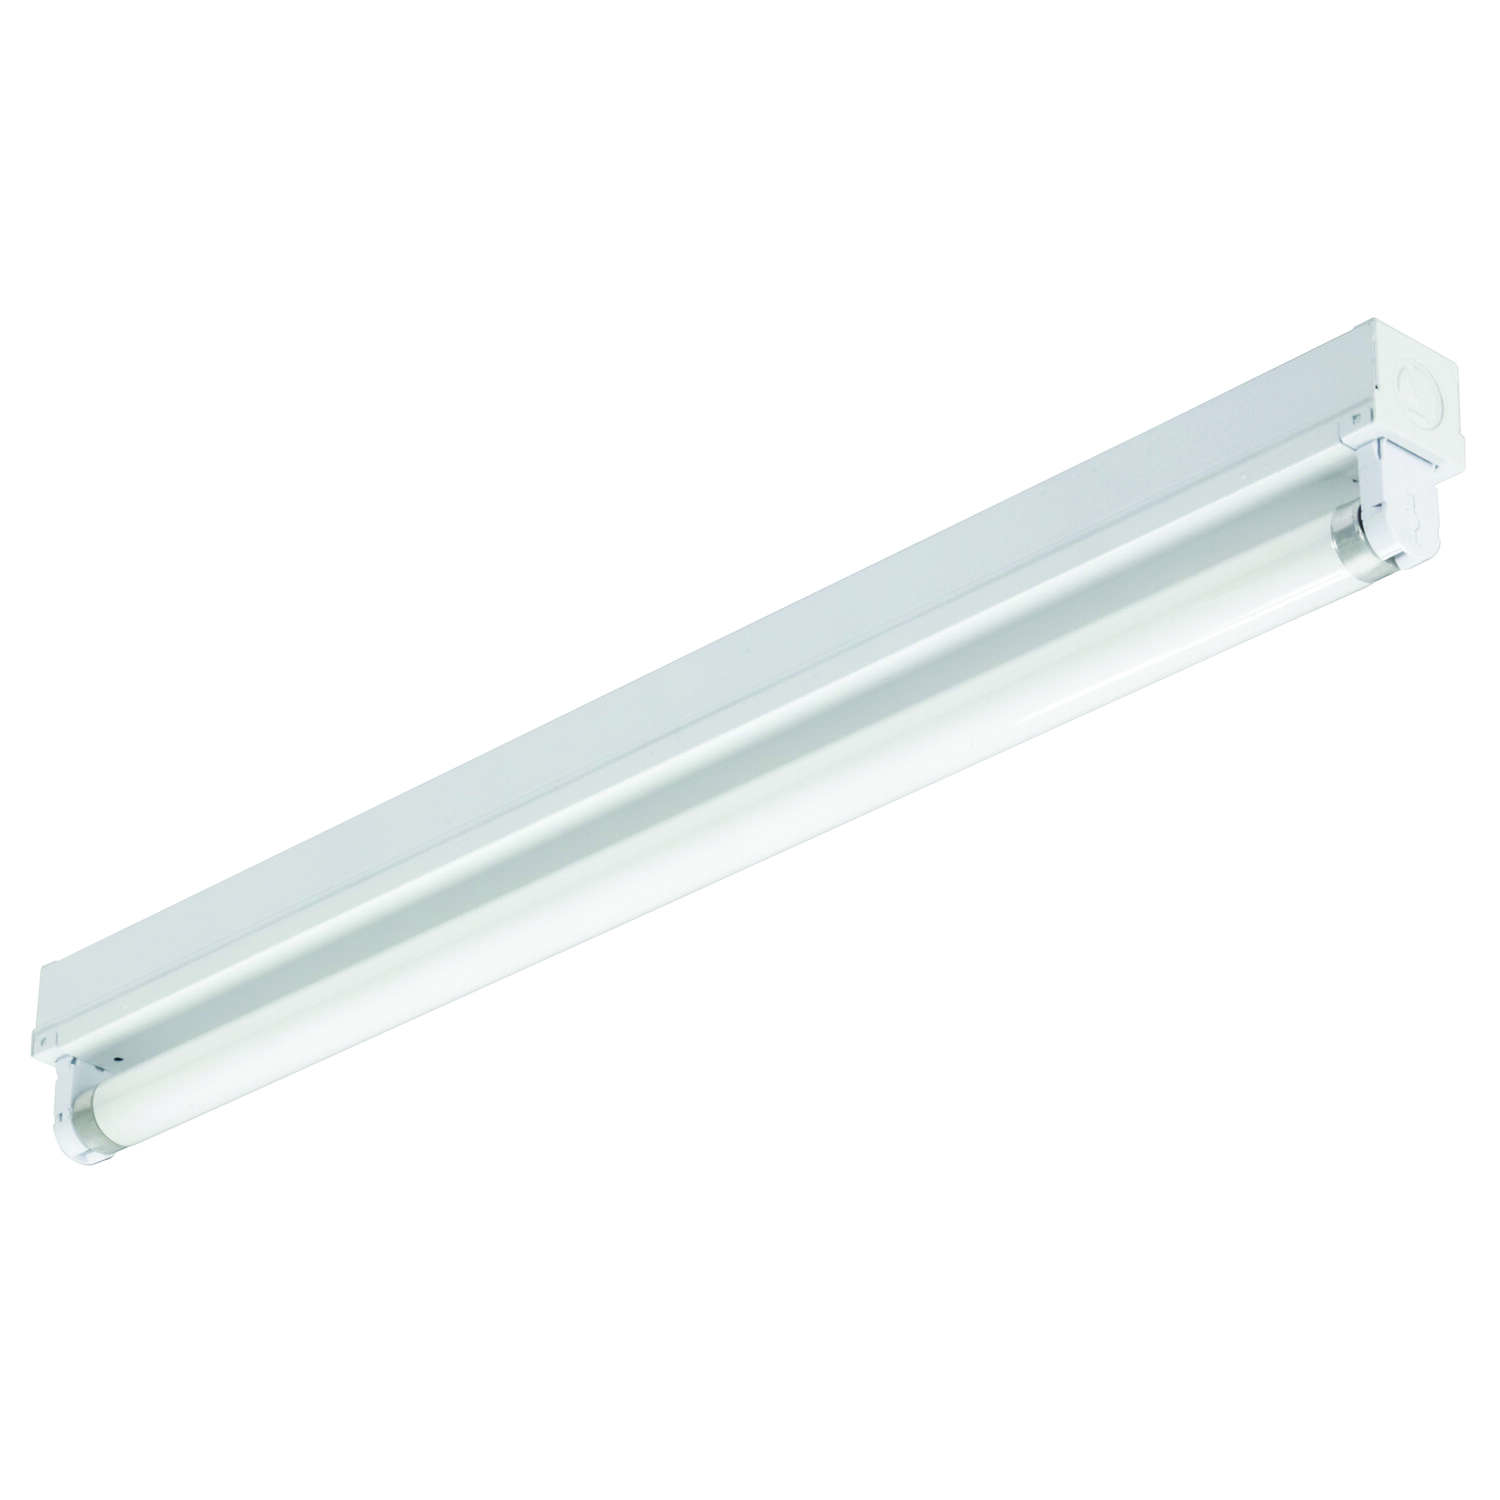 Lithonia Lighting  24.375 in. L White  Hardwired  Fluorescent  Strip Light